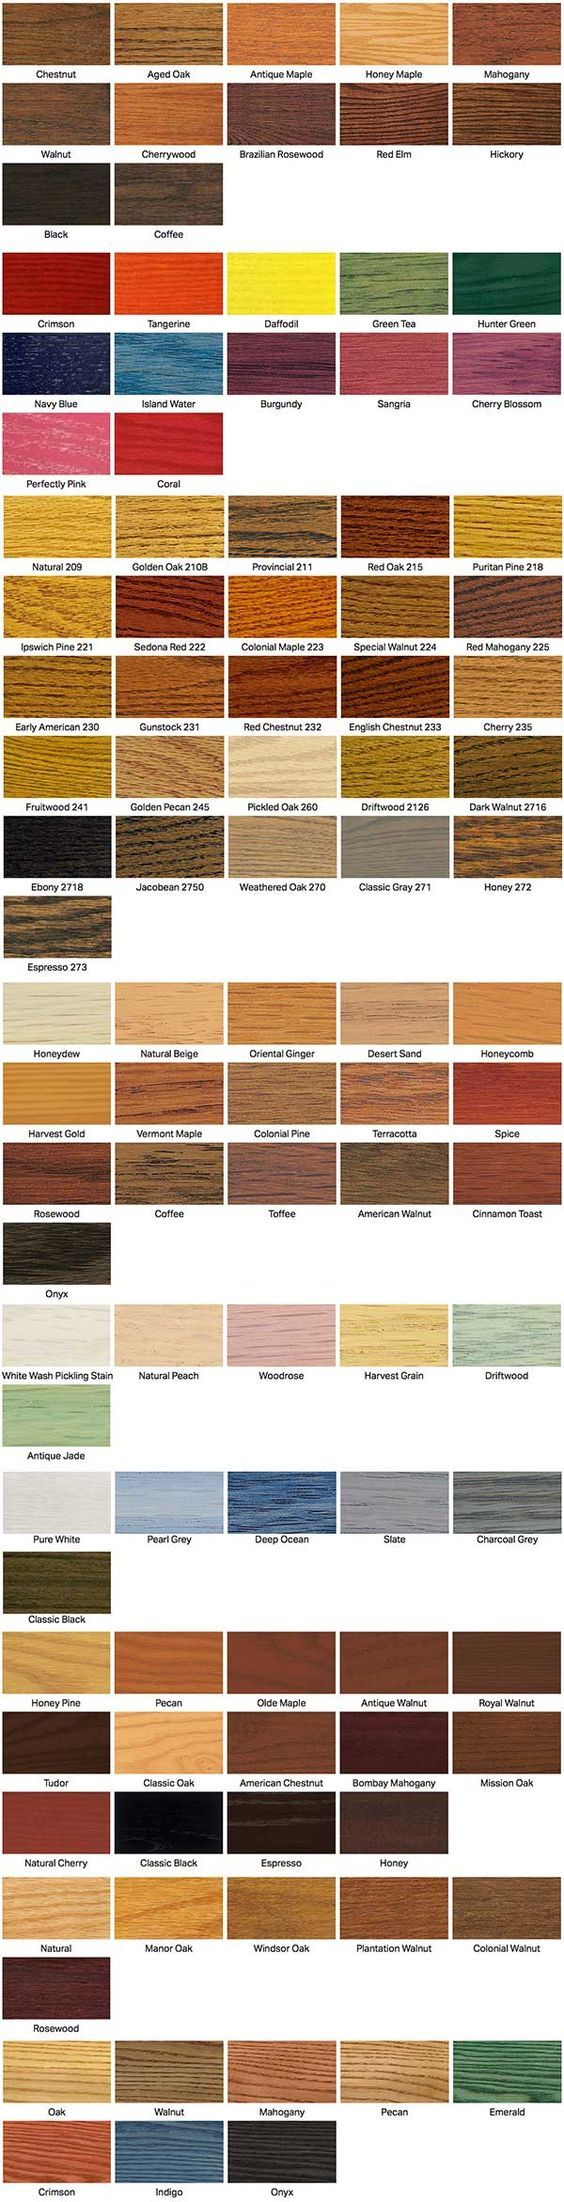 wood floor stain colors from minwax by hardwood floor service